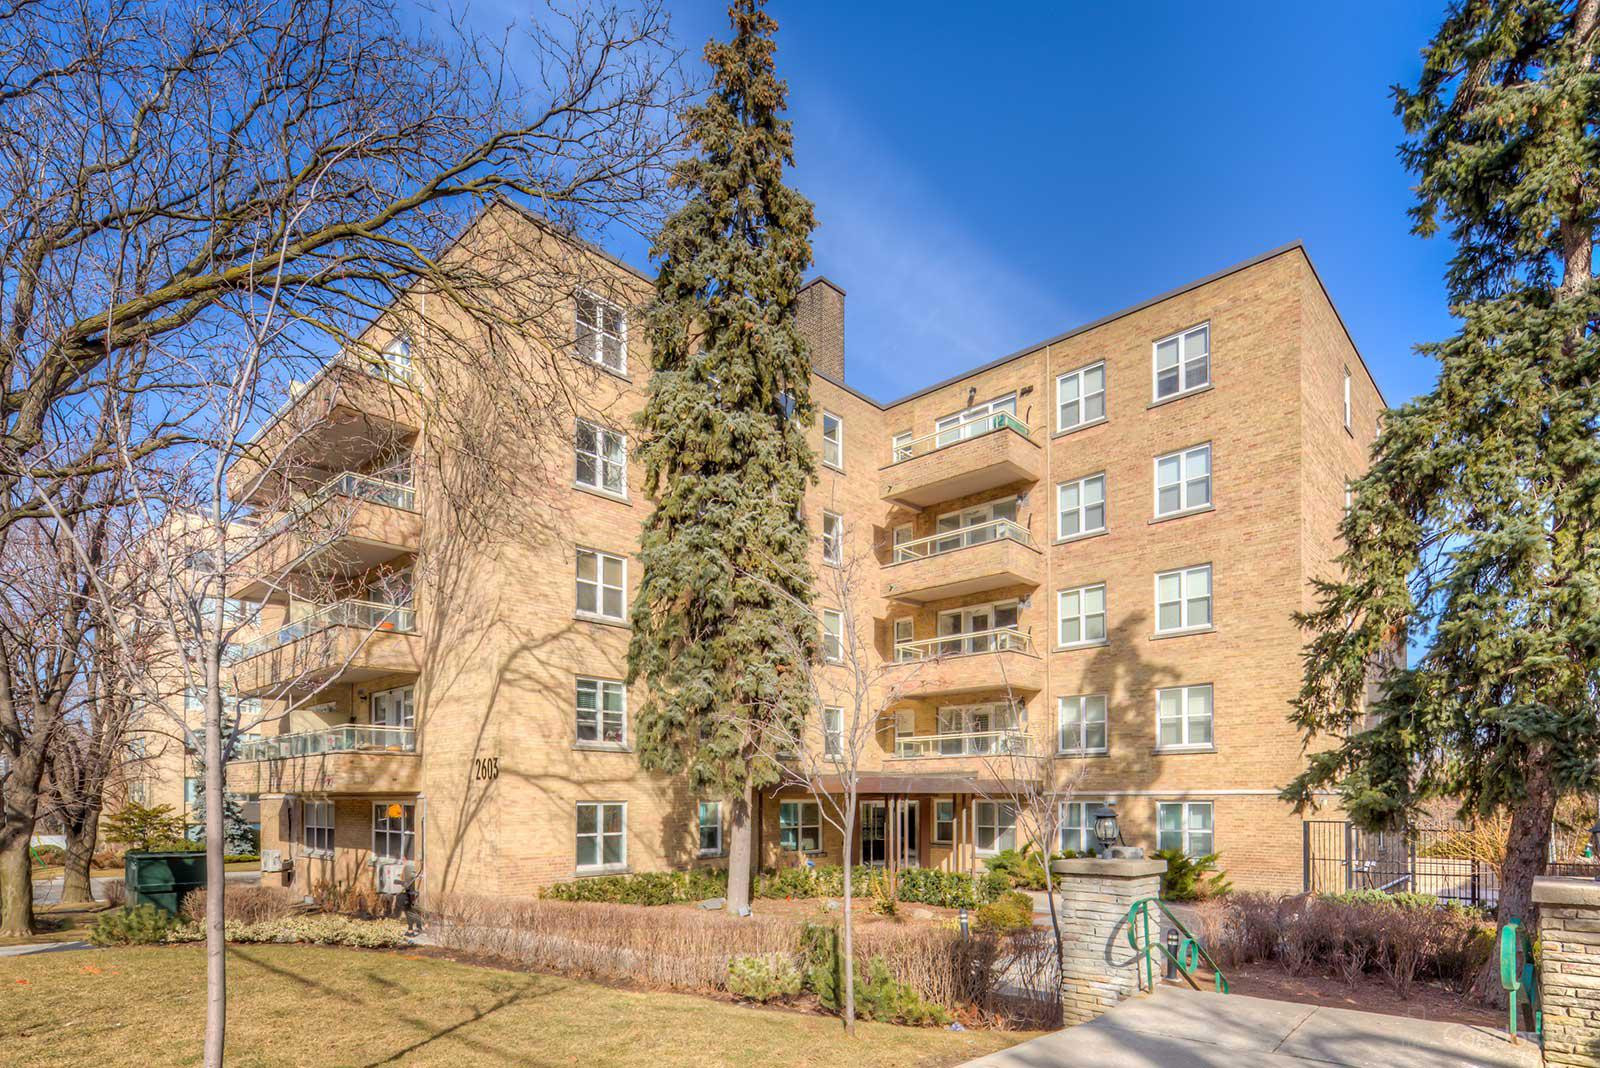 The Courtyards of Upper Forest Hill at 2603 Bathurst St, Toronto 1